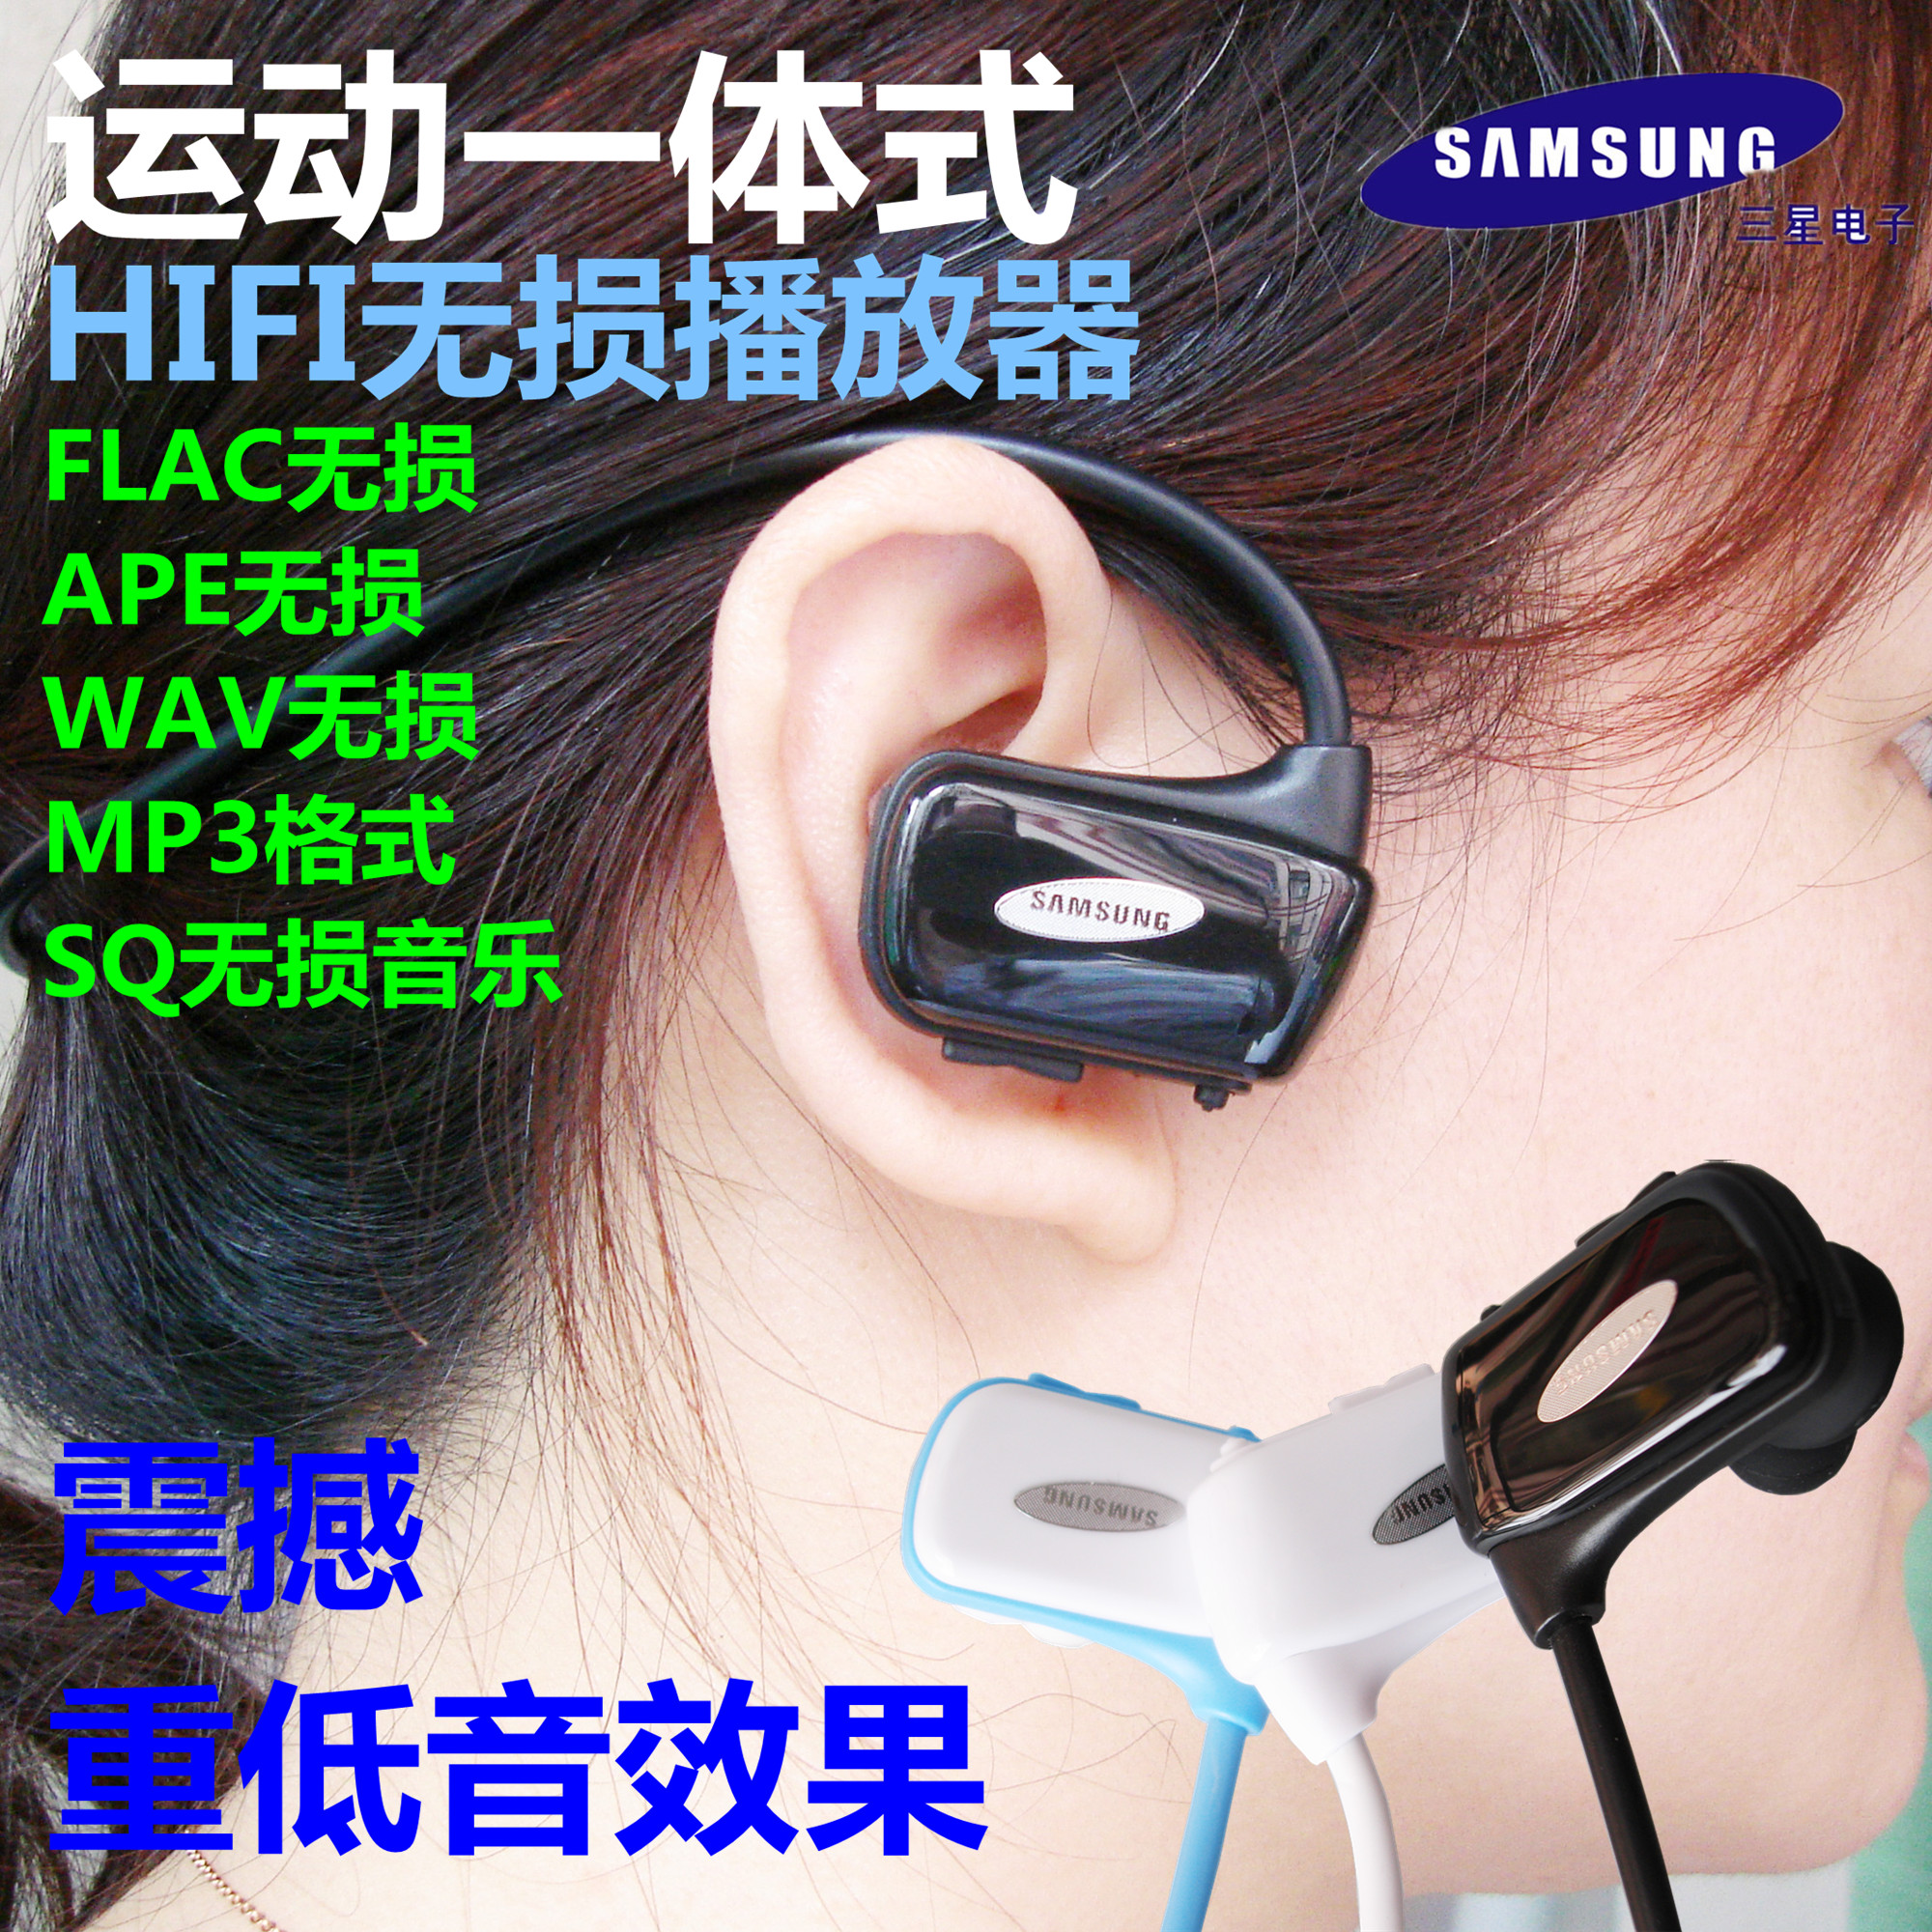 Samsung mp3 integrated player Non-destructive HIFI walkman sports run